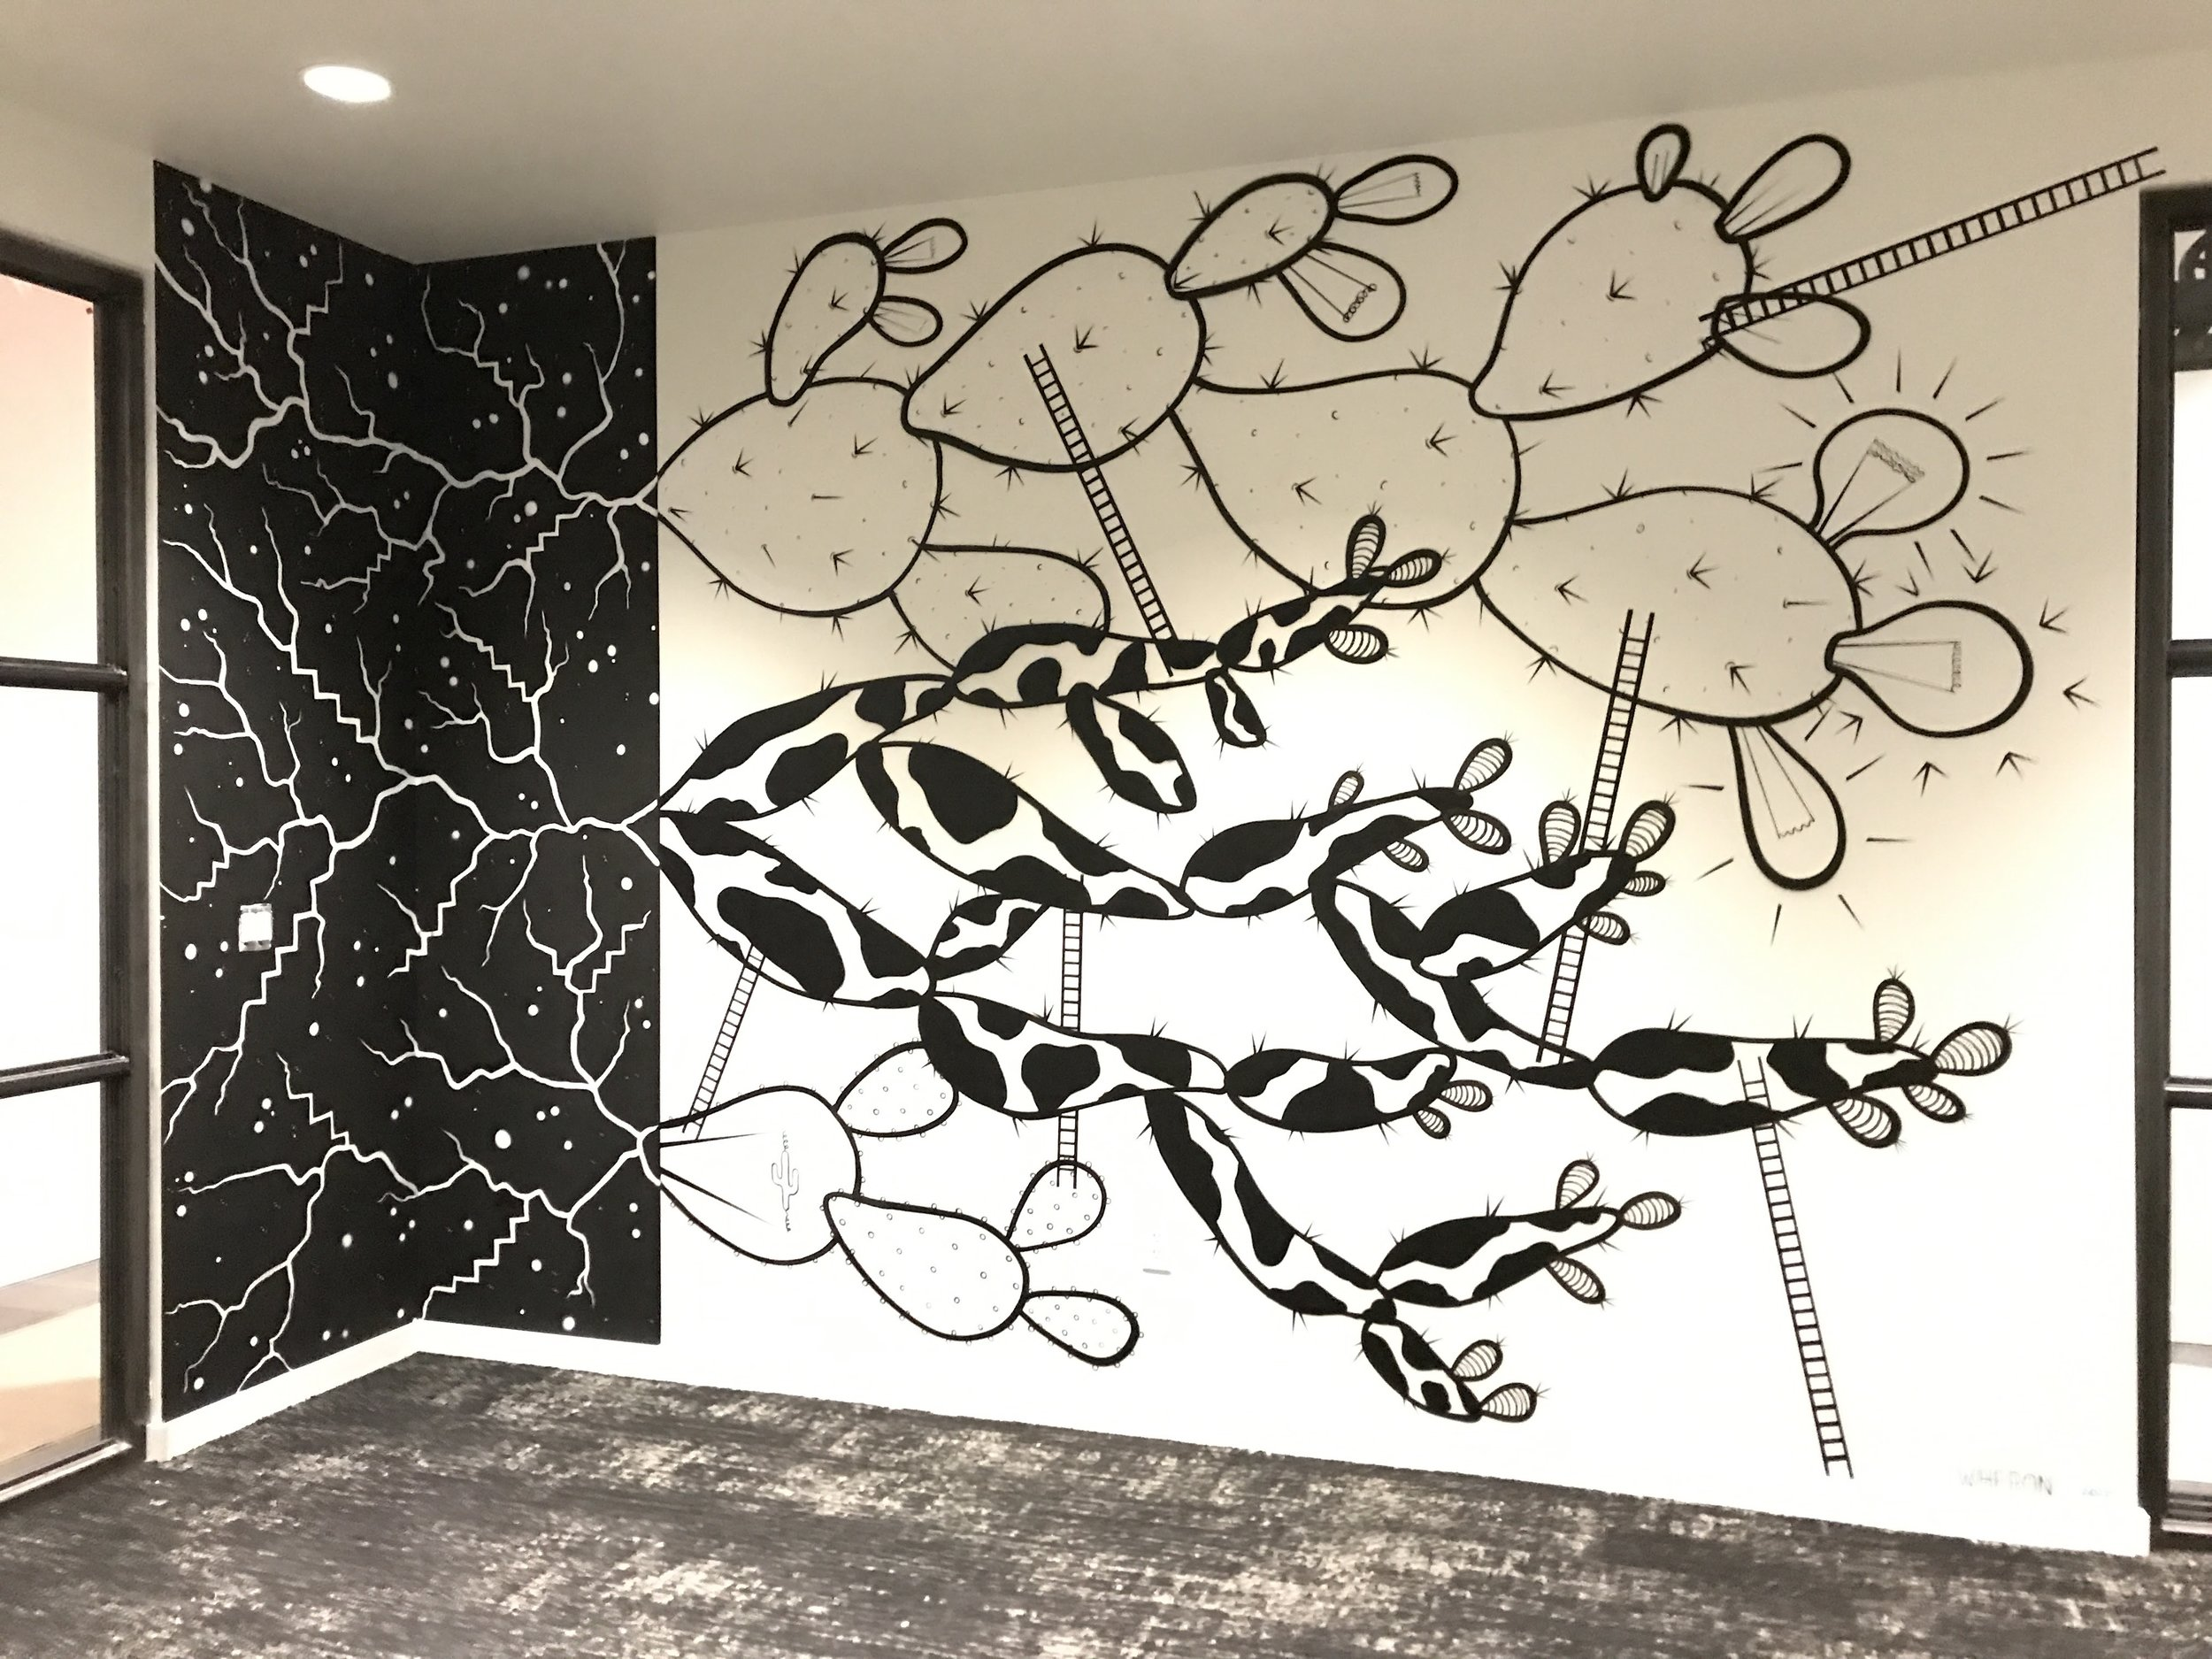 Roots & Ladders   Ft. Worth, TX. September 2017  Commissioned by  Common Desk .